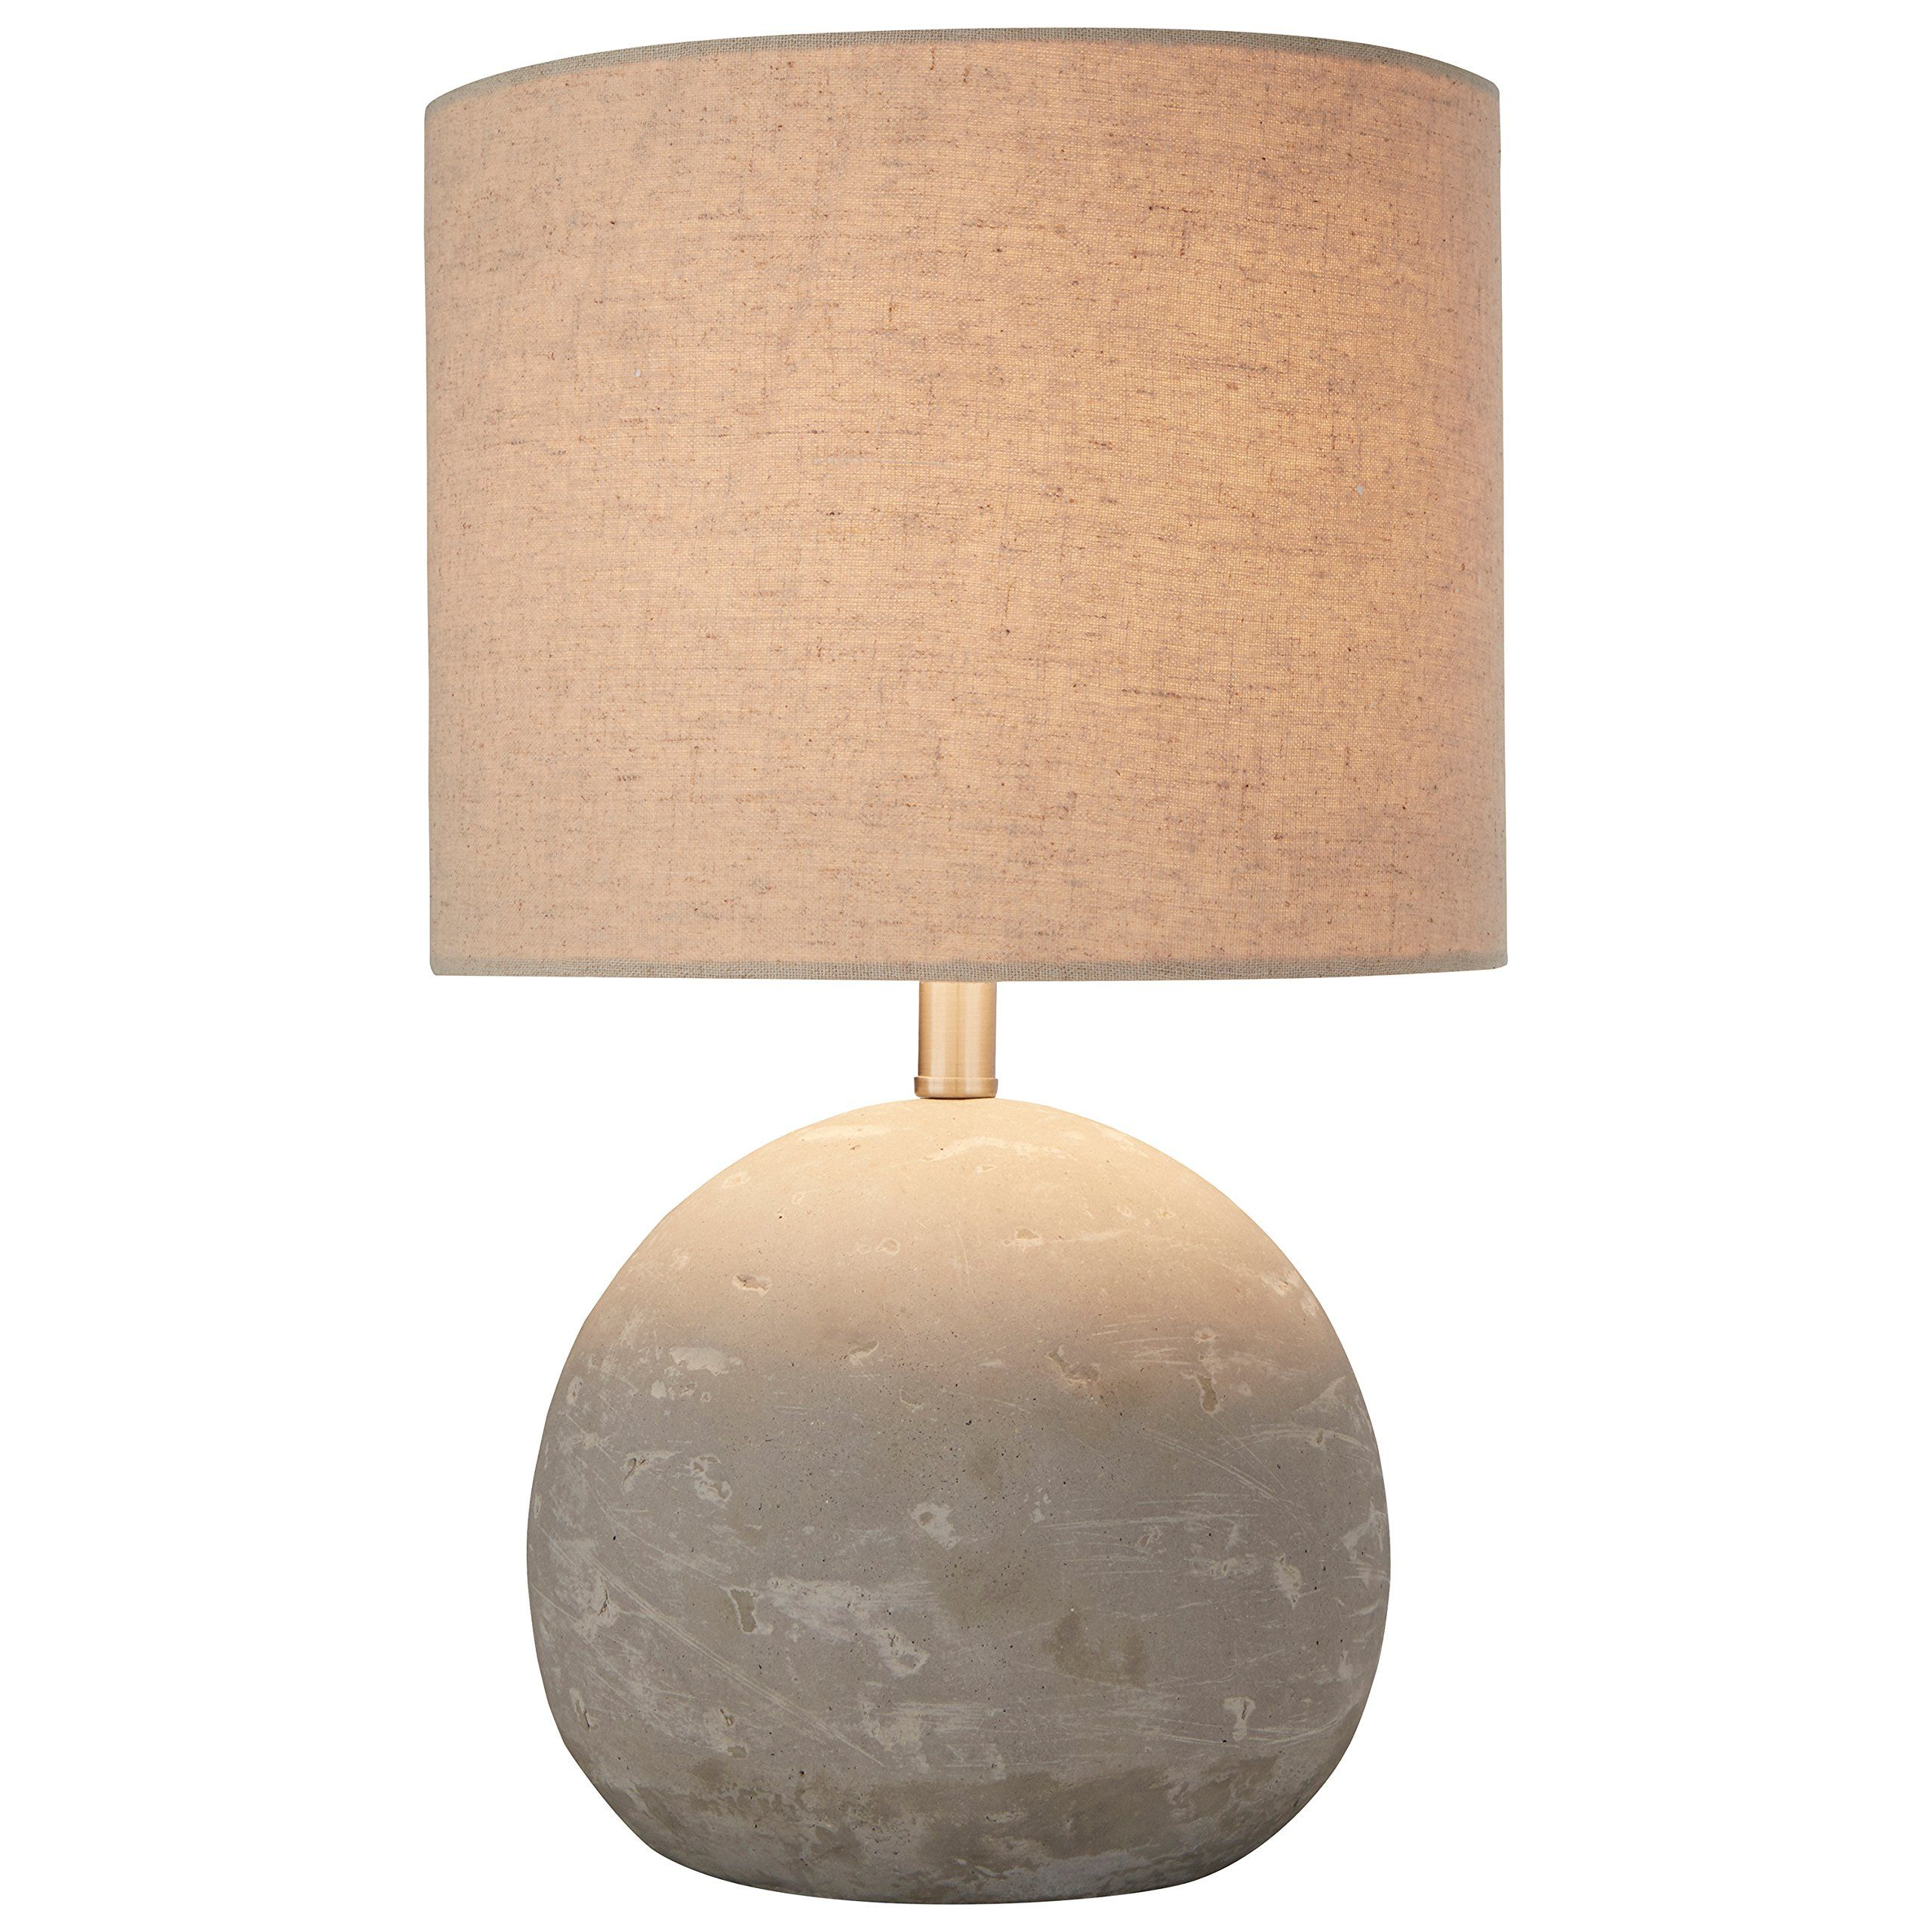 Stone & Beam Industrial Concrete Table Lamp, 16H, With Bulb,